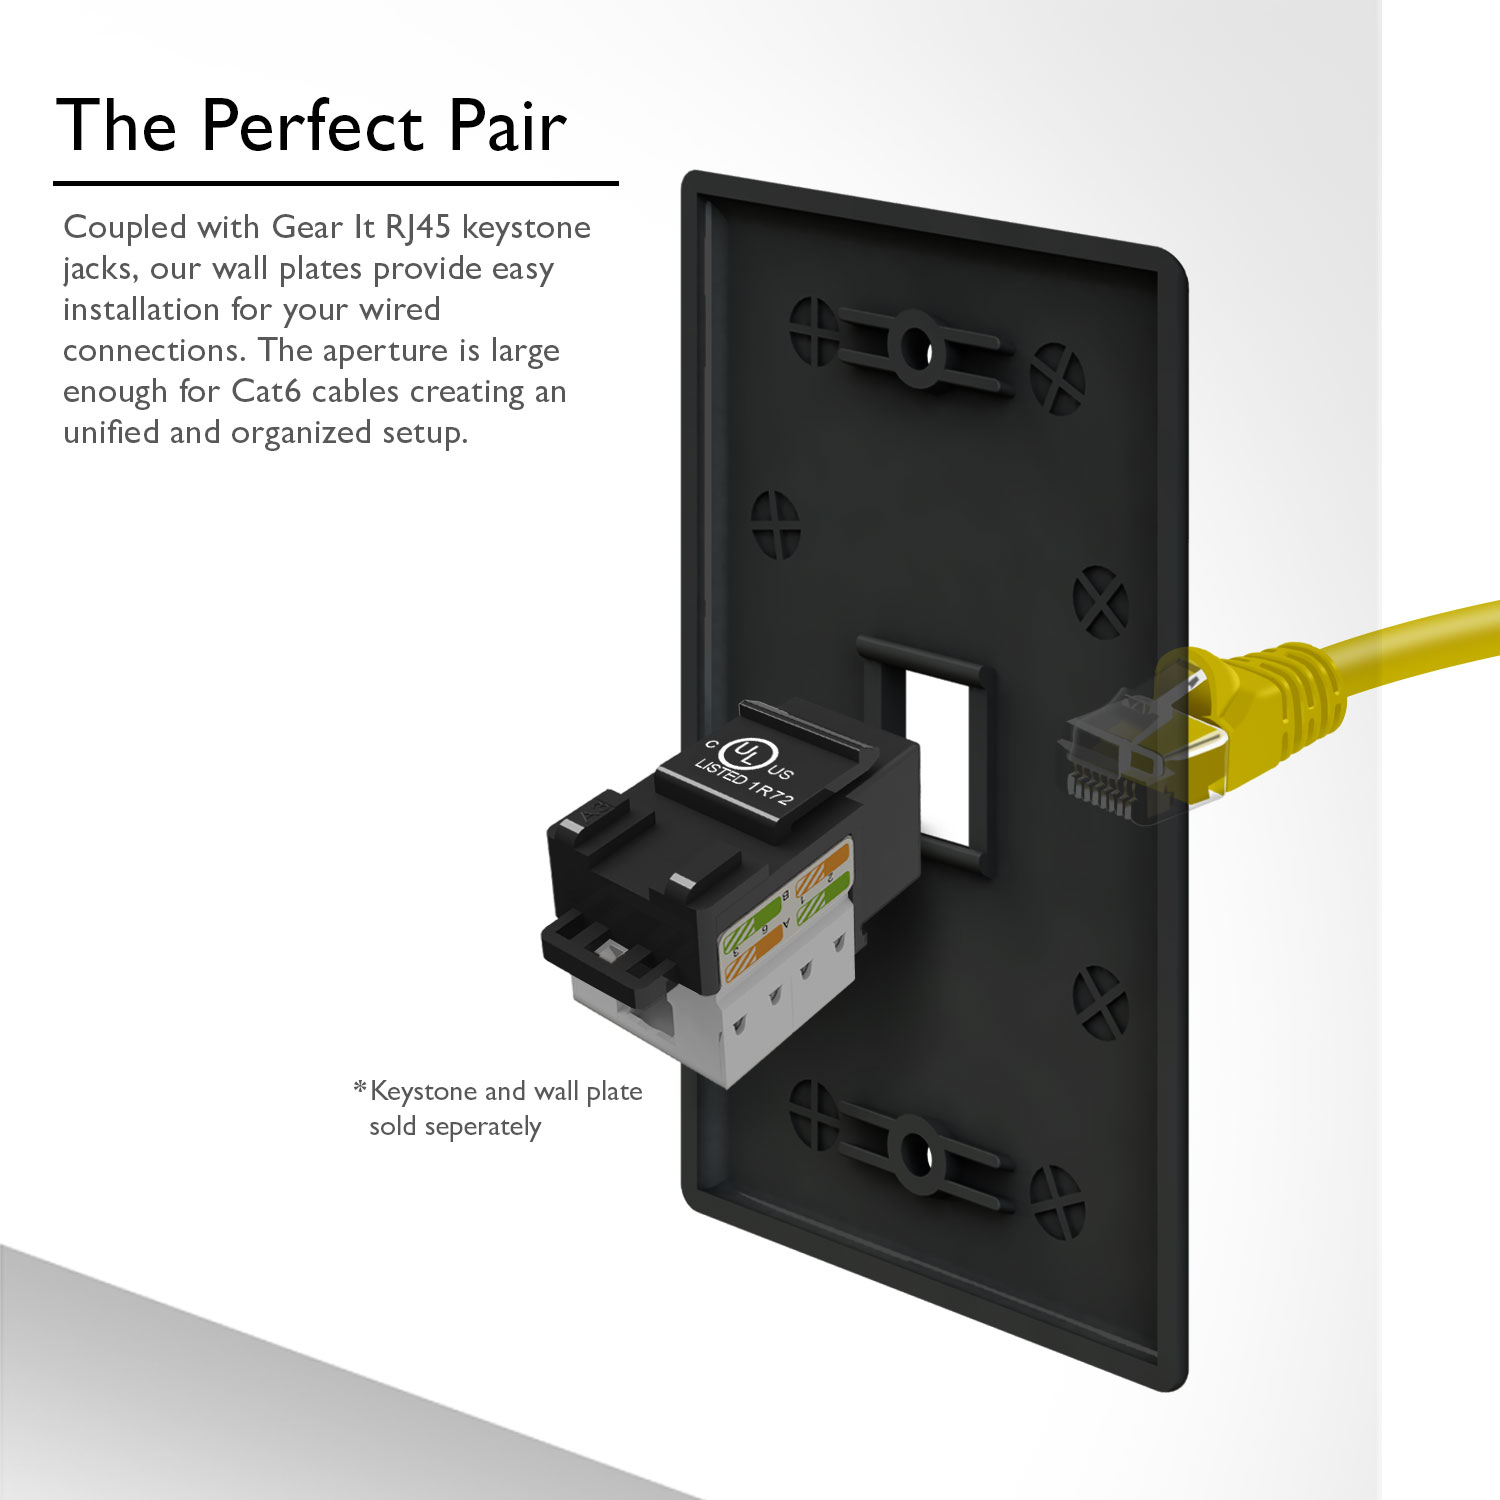 Cat6 Wall Plate And Keystone Gearit 1 Port Ethernet With Jack Wiring Punch Down Connector Black Pack Of 10